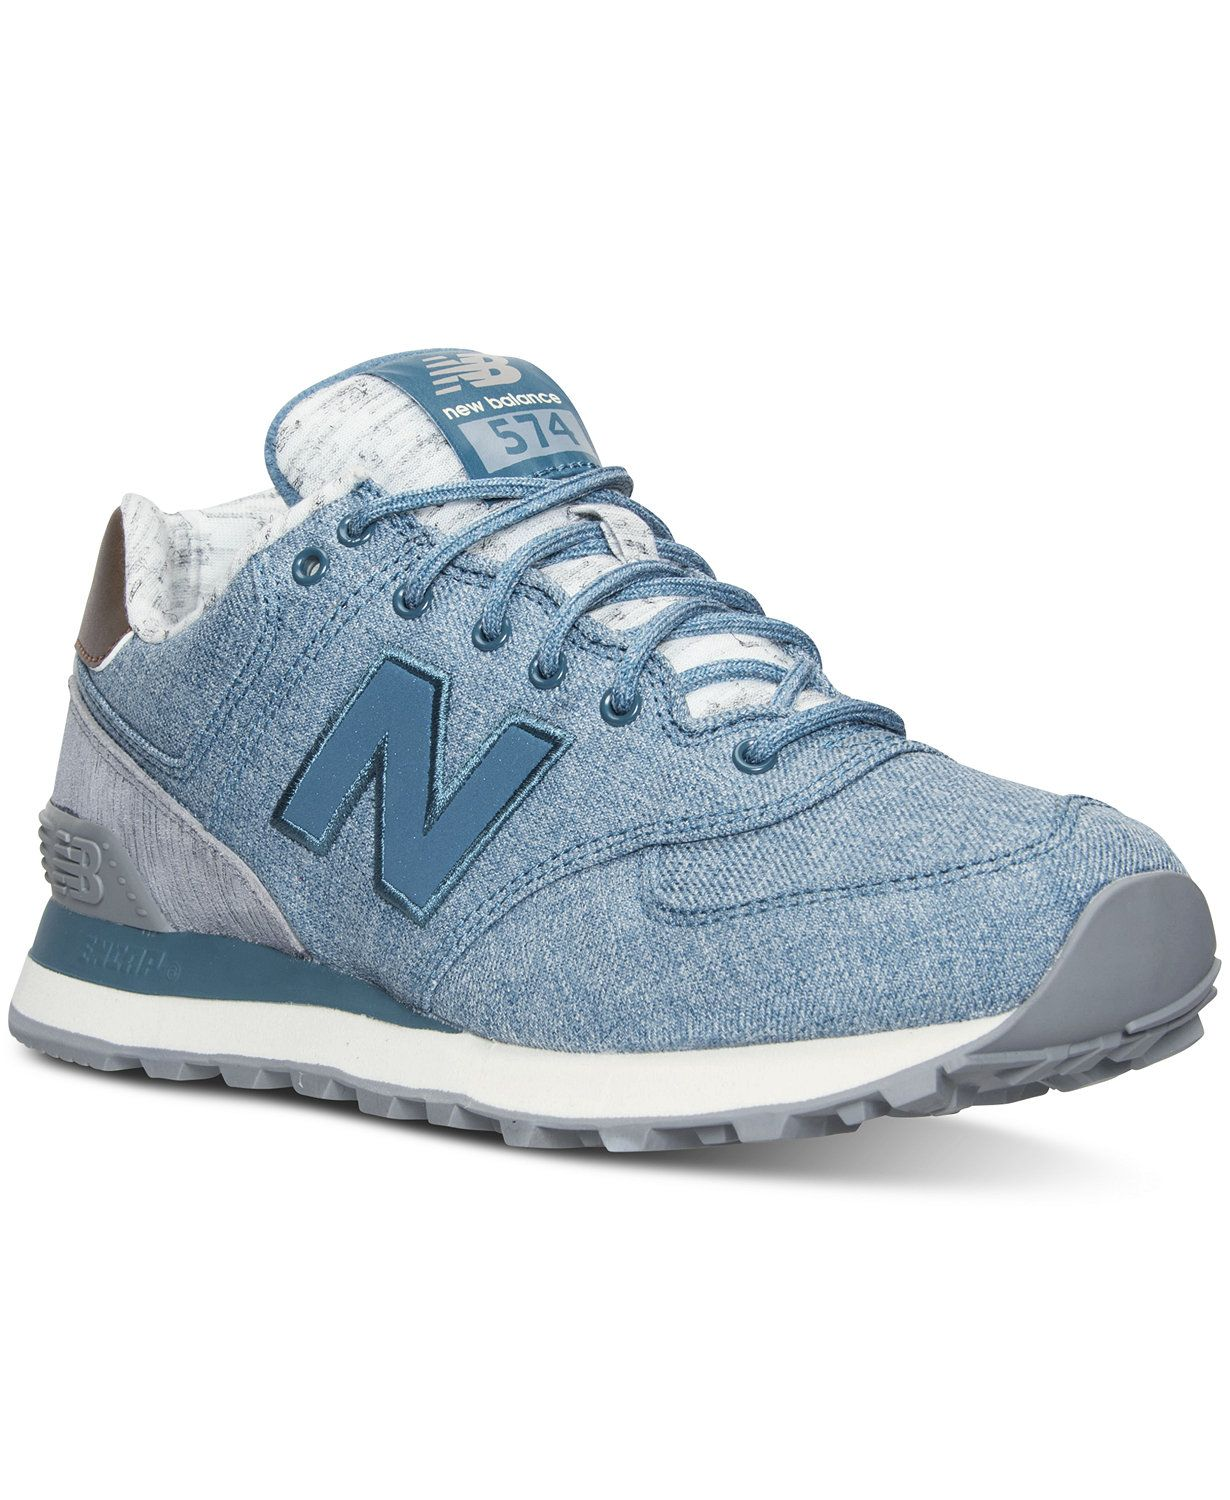 New Balance Women's 574 Heathered Casual Sneakers from